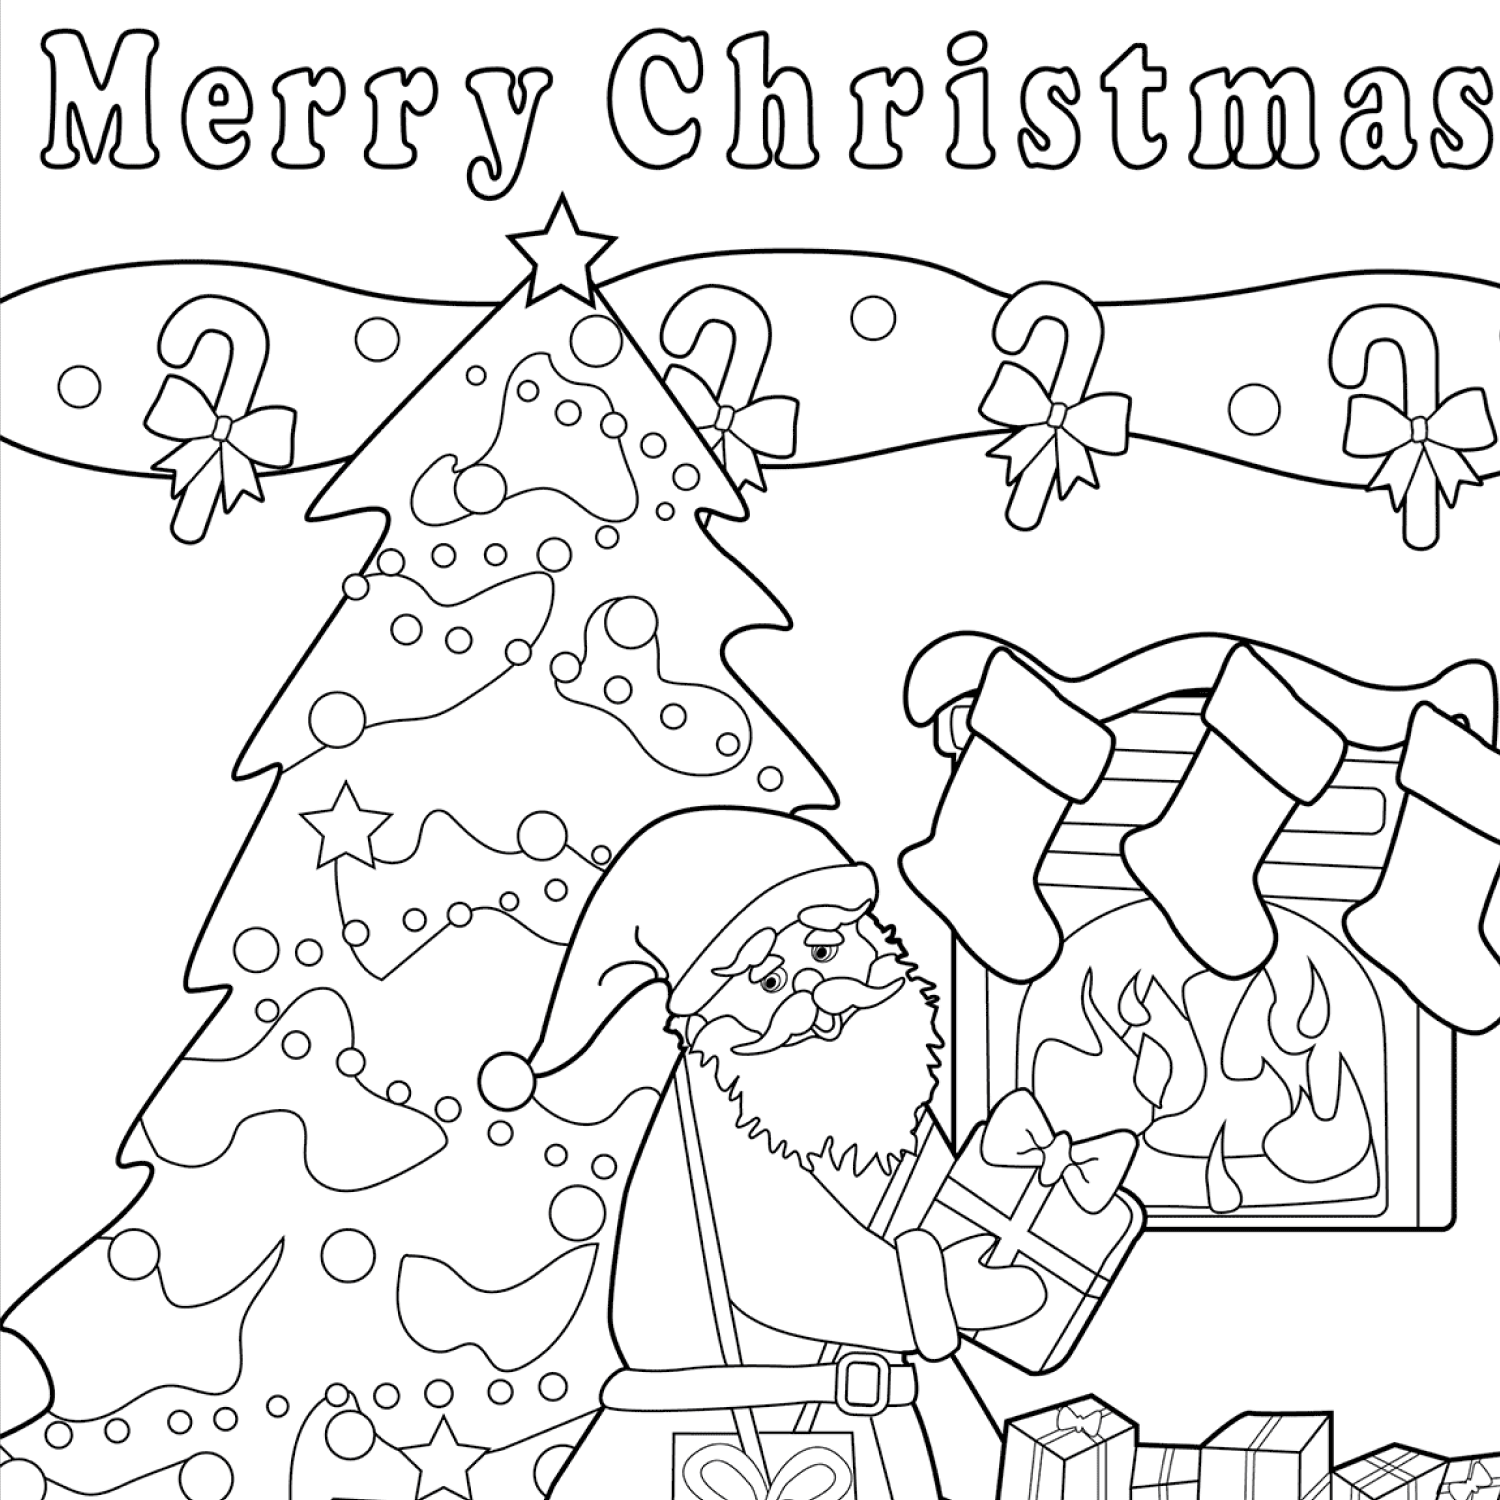 Merry Christmas coloring page cover image.